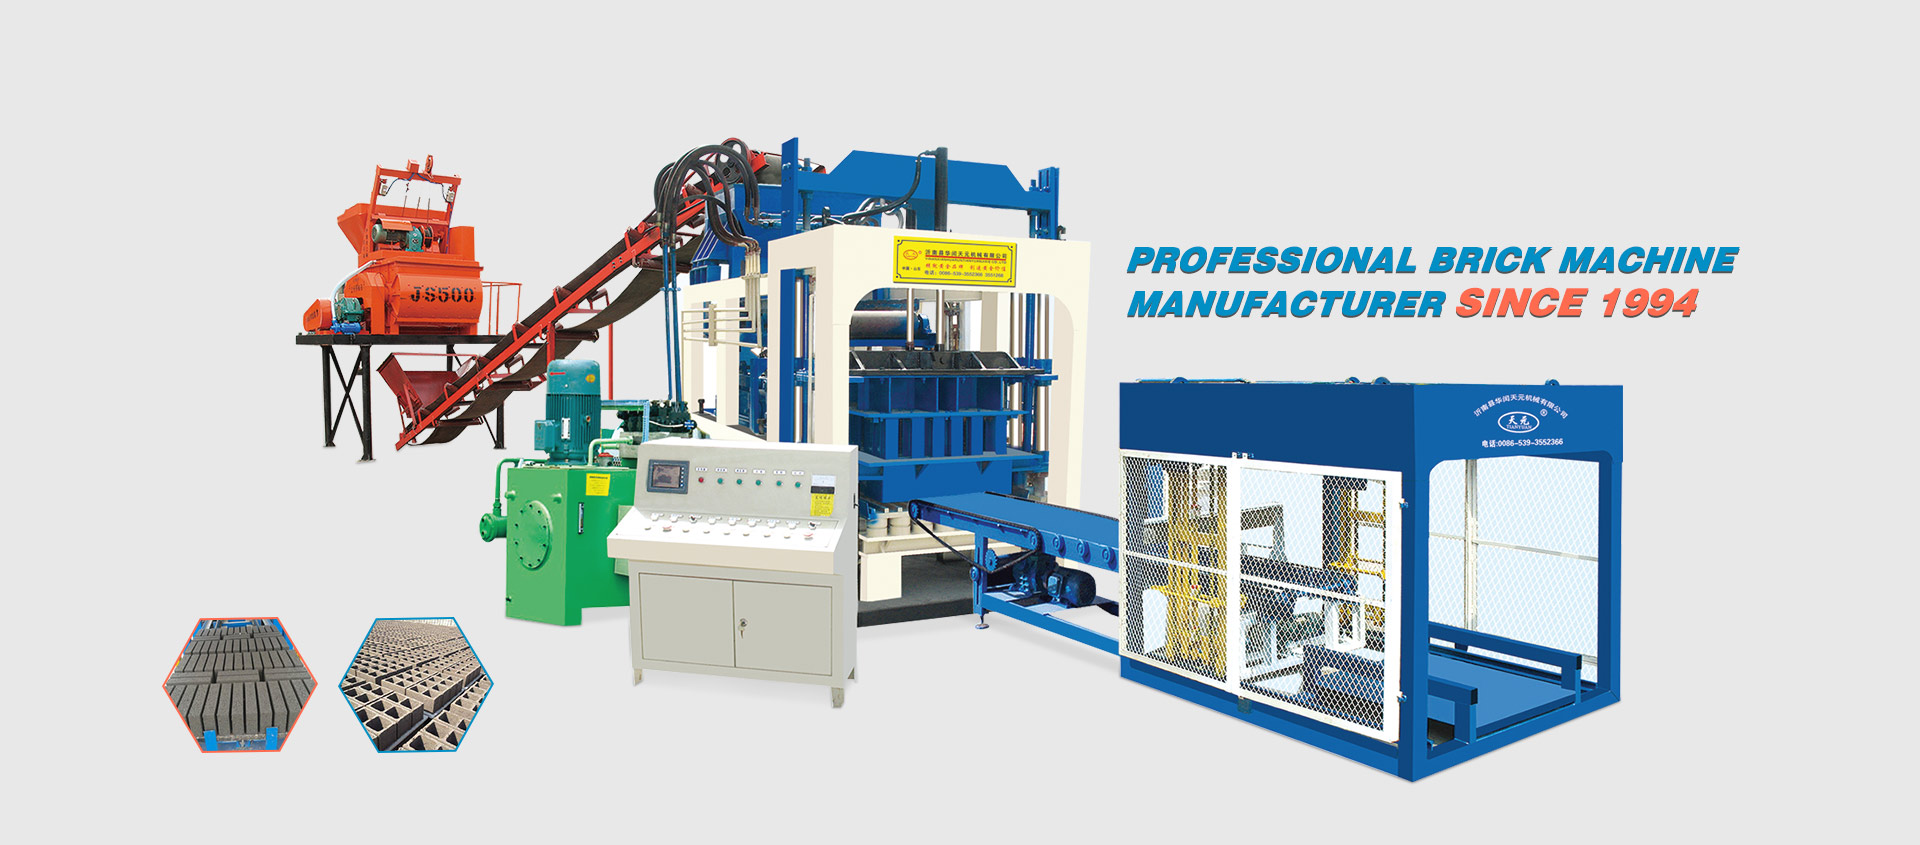 professional brick machine manufacturer since 1994